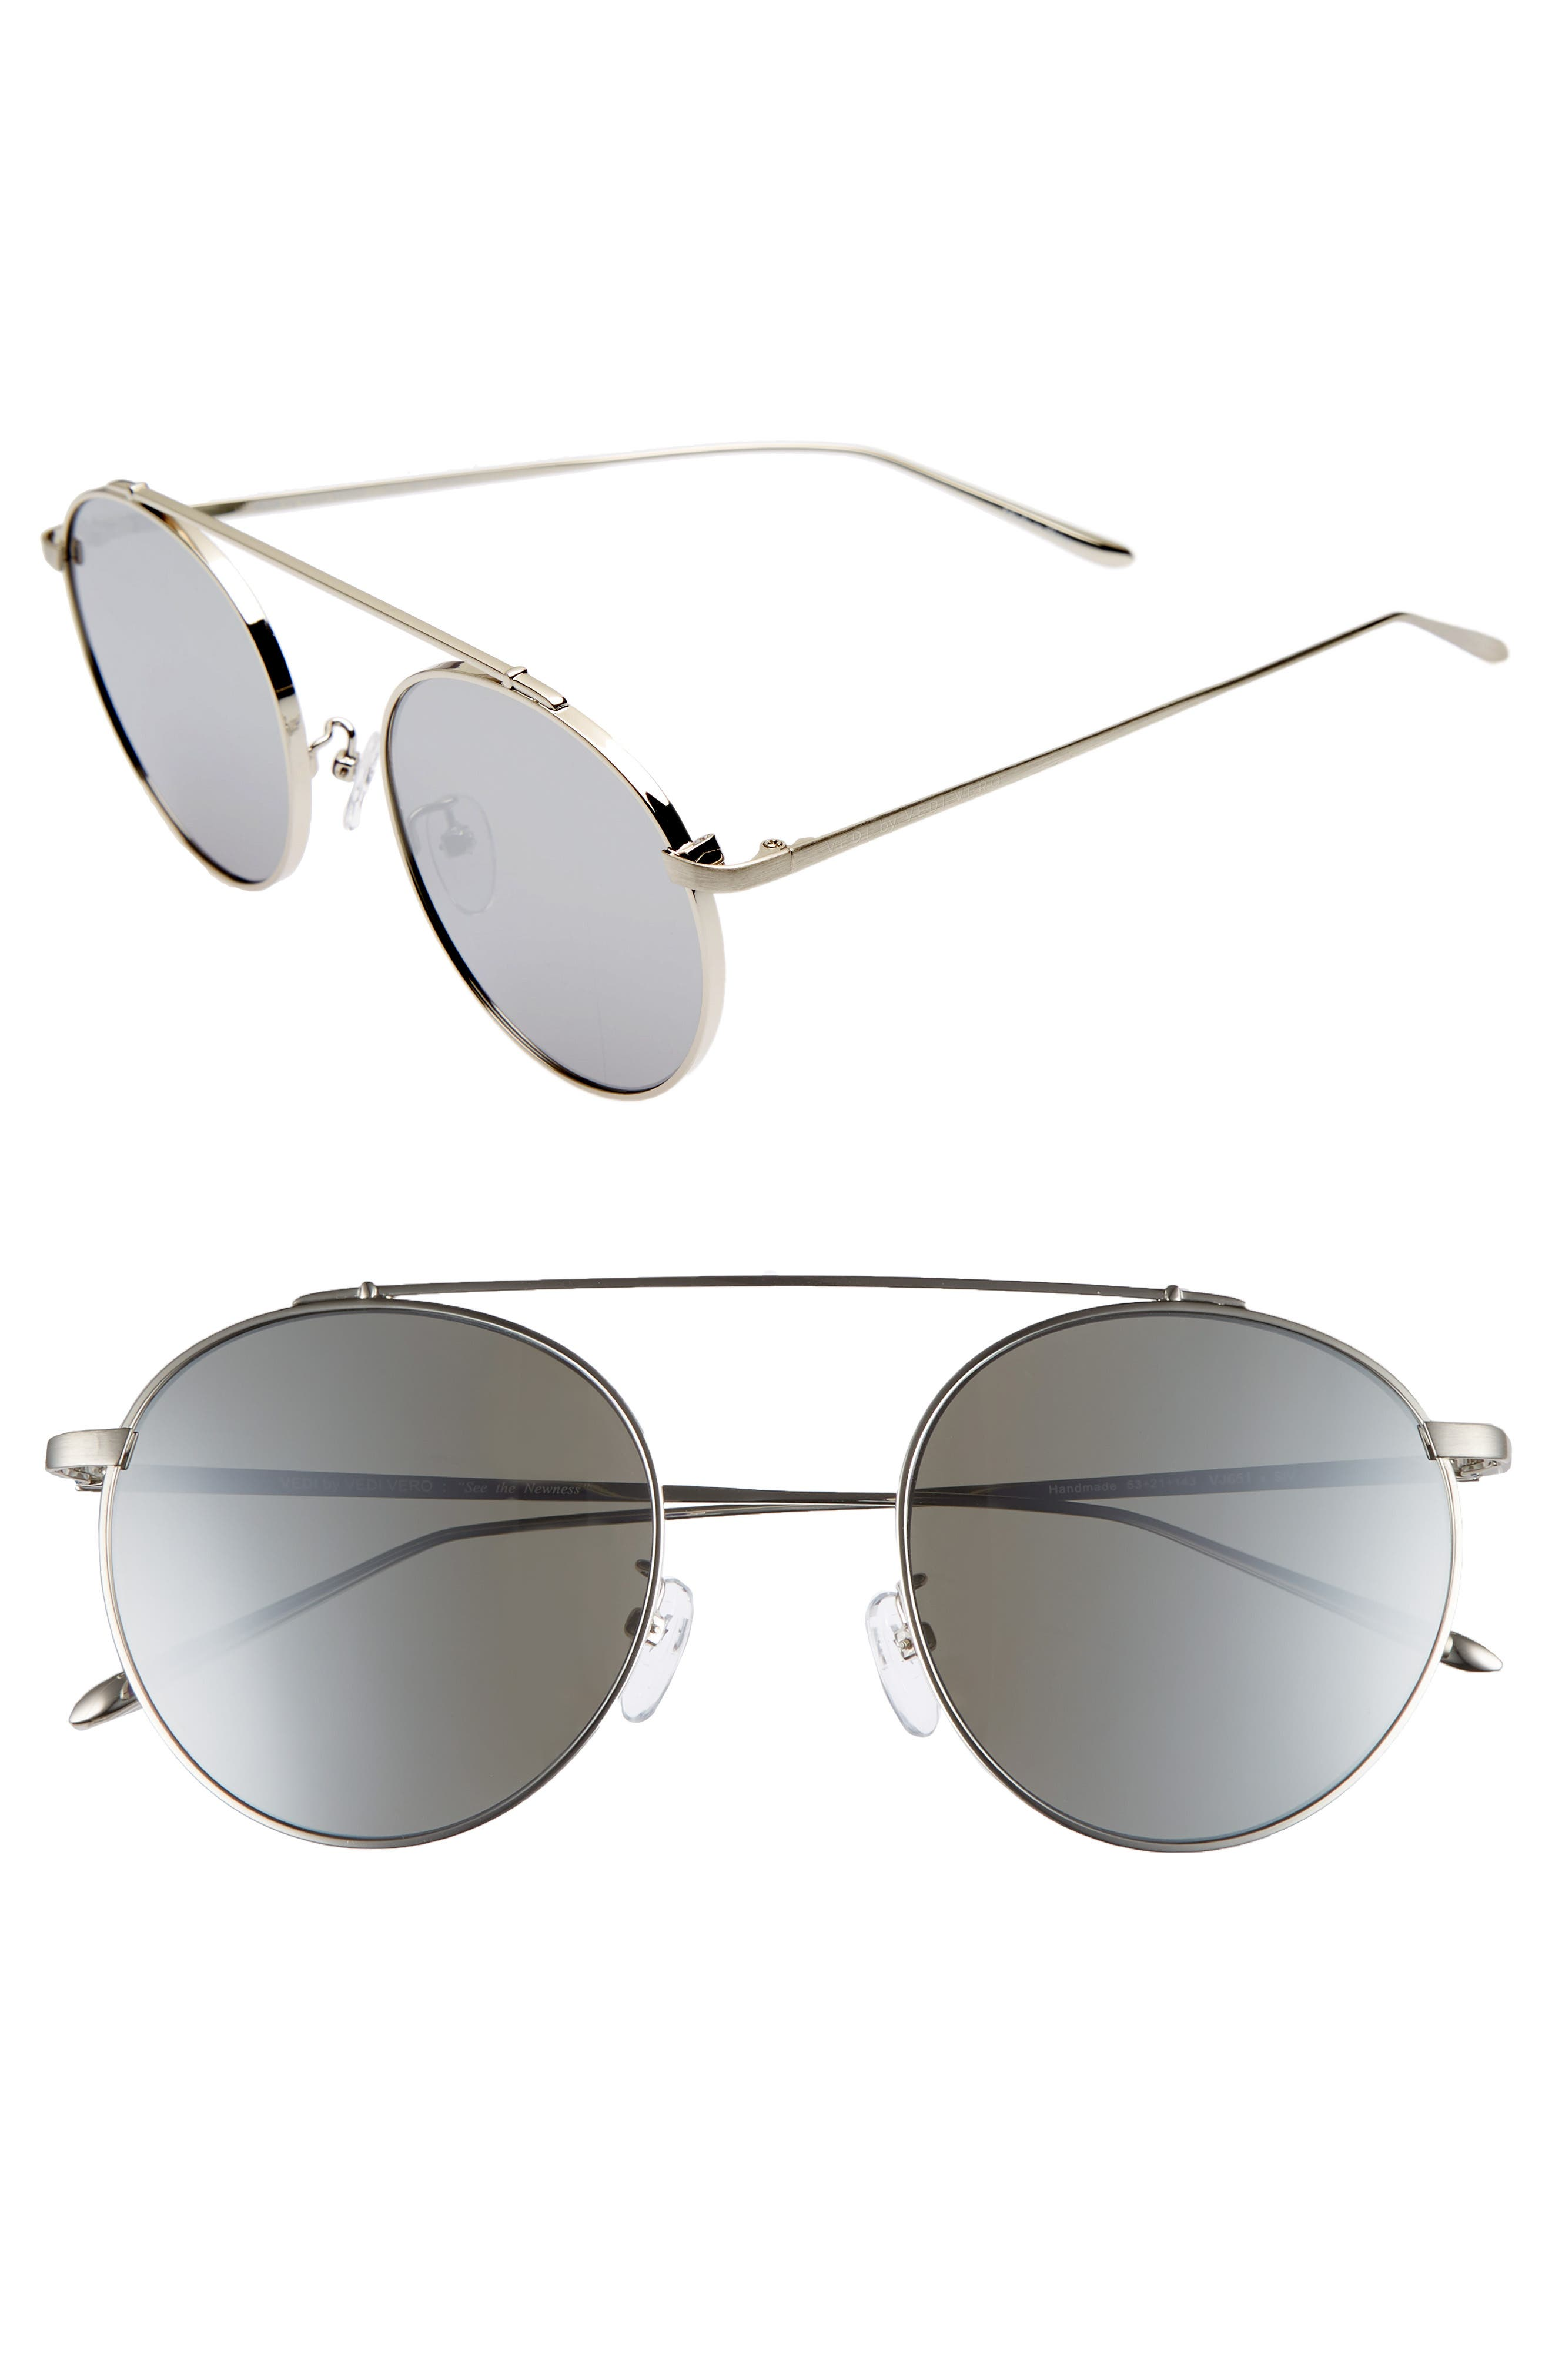 53mm Round Sunglasses,                             Main thumbnail 1, color,                             ROSE GOLD/PINK MIRROR